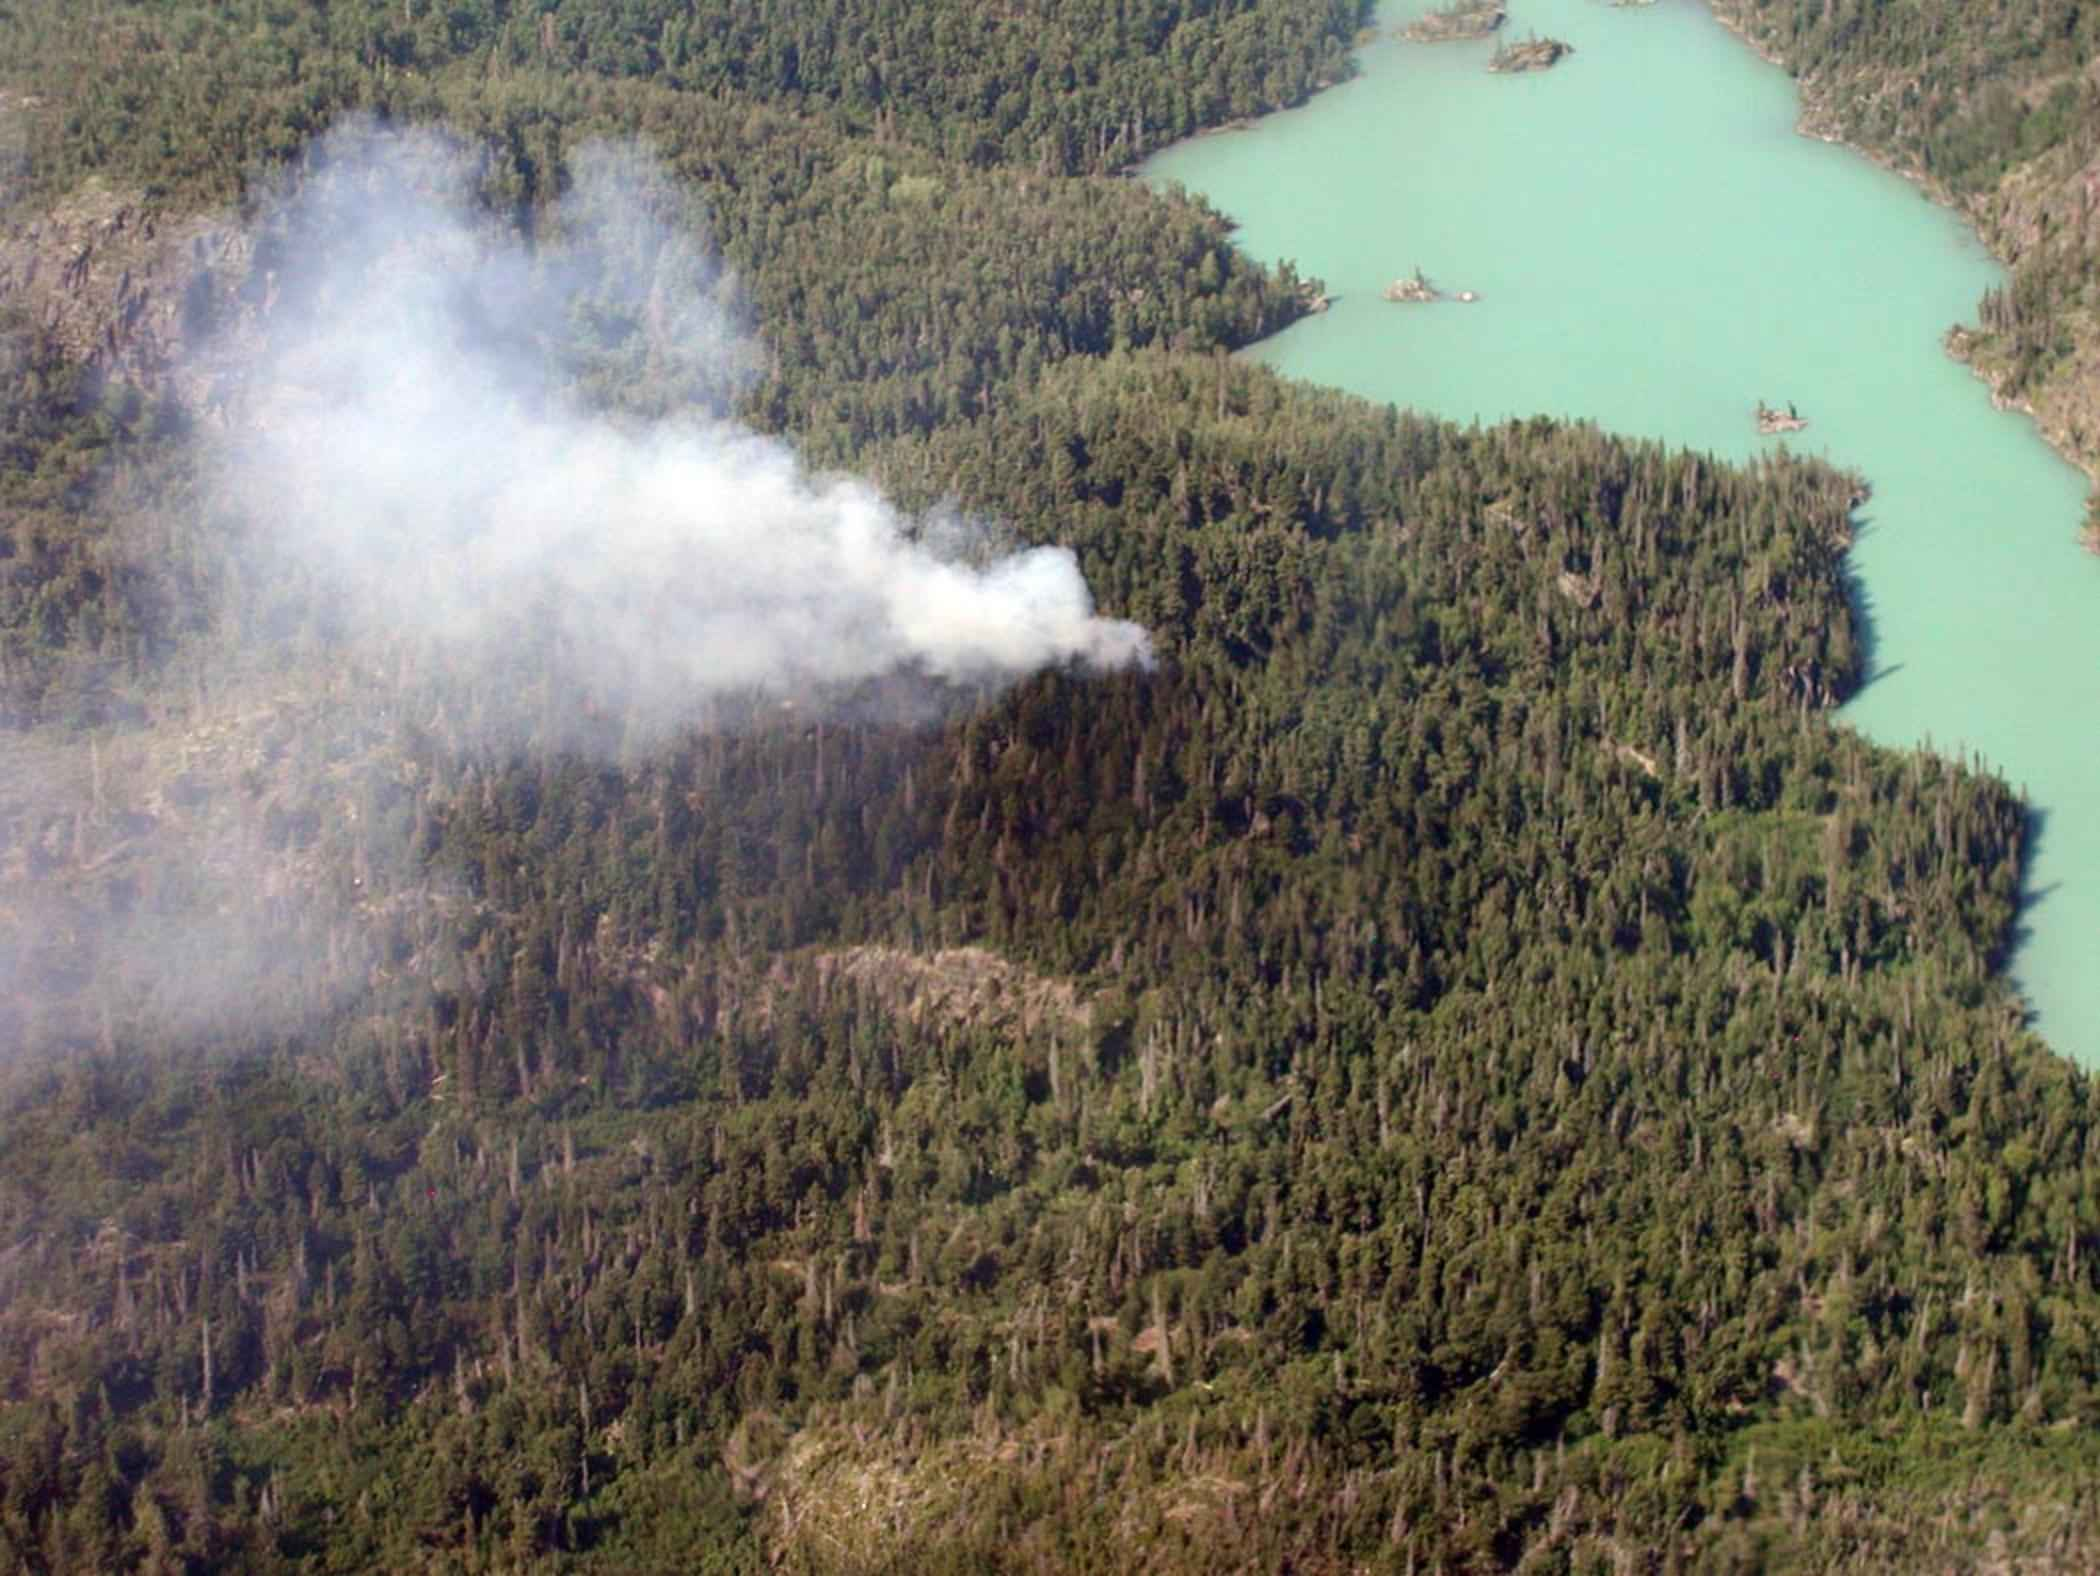 File:Aerial photography of forest fire.jpg - Wikimedia Commons: https://commons.wikimedia.org/wiki/file:aerial_photography_of...